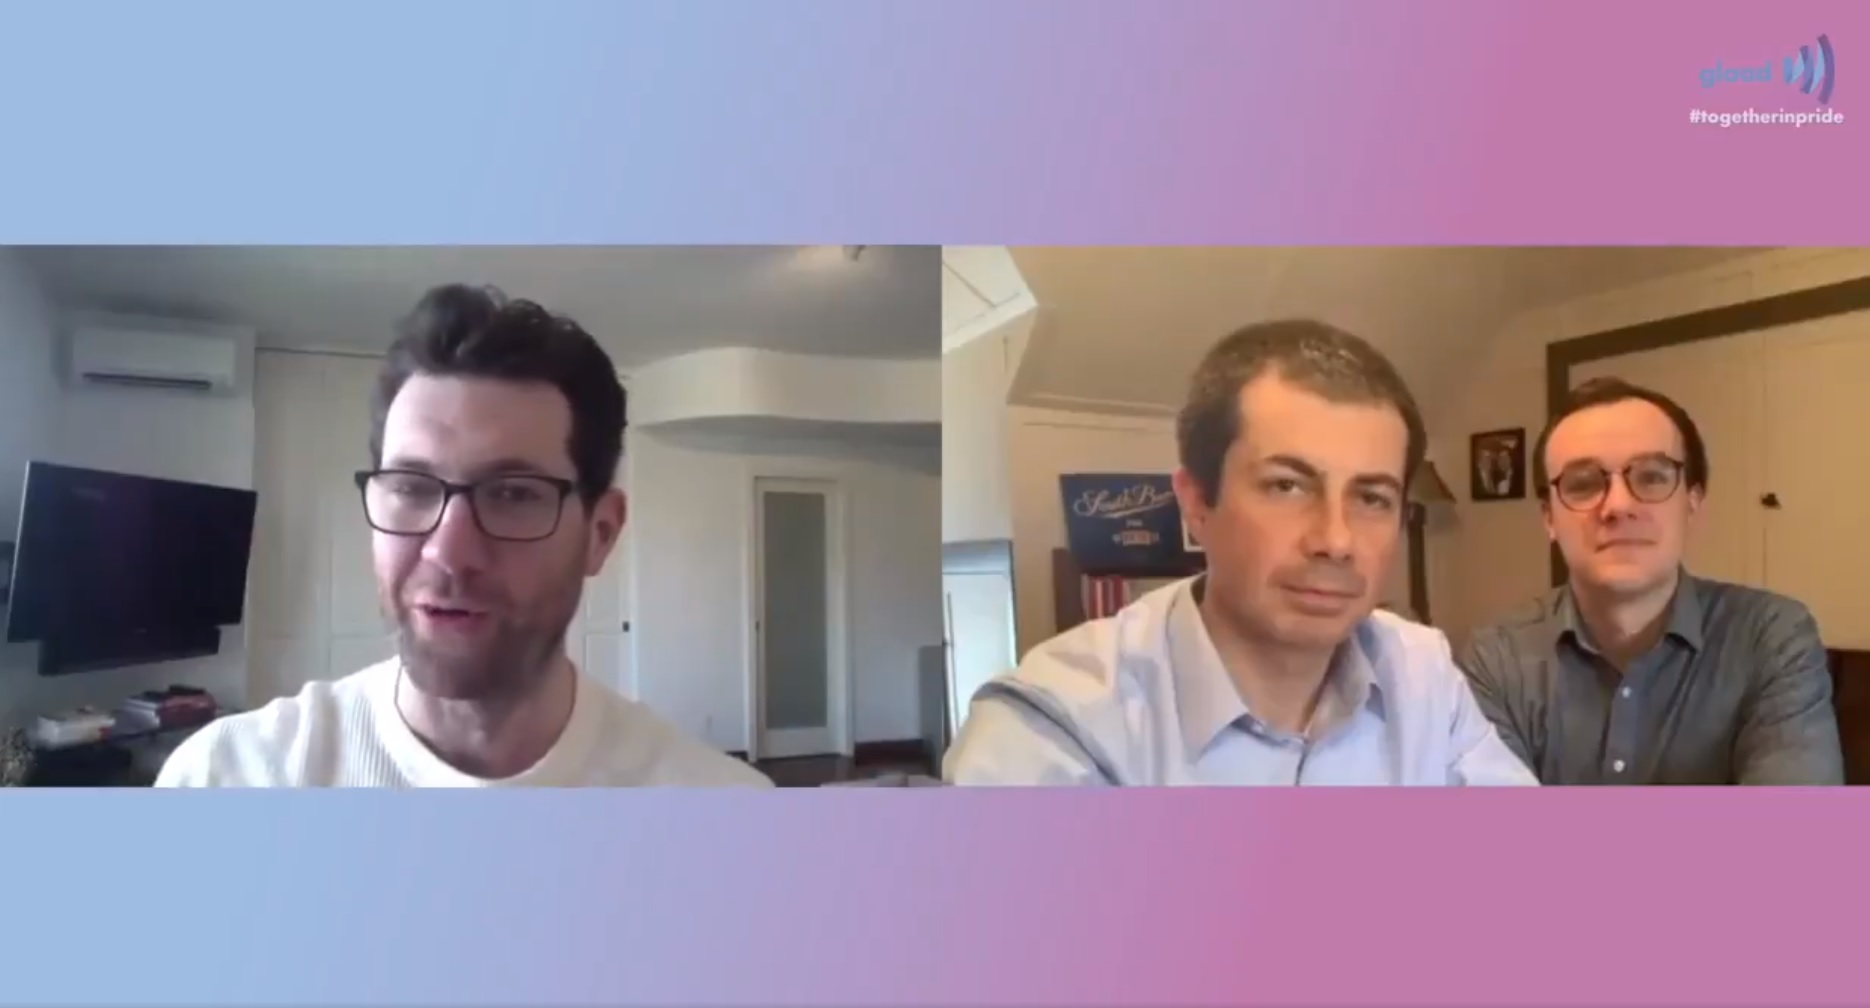 Billy Eichner quizzed Pete Buttigieg and Chasten Buttigieg on GLAAD's Together in Pride livestream